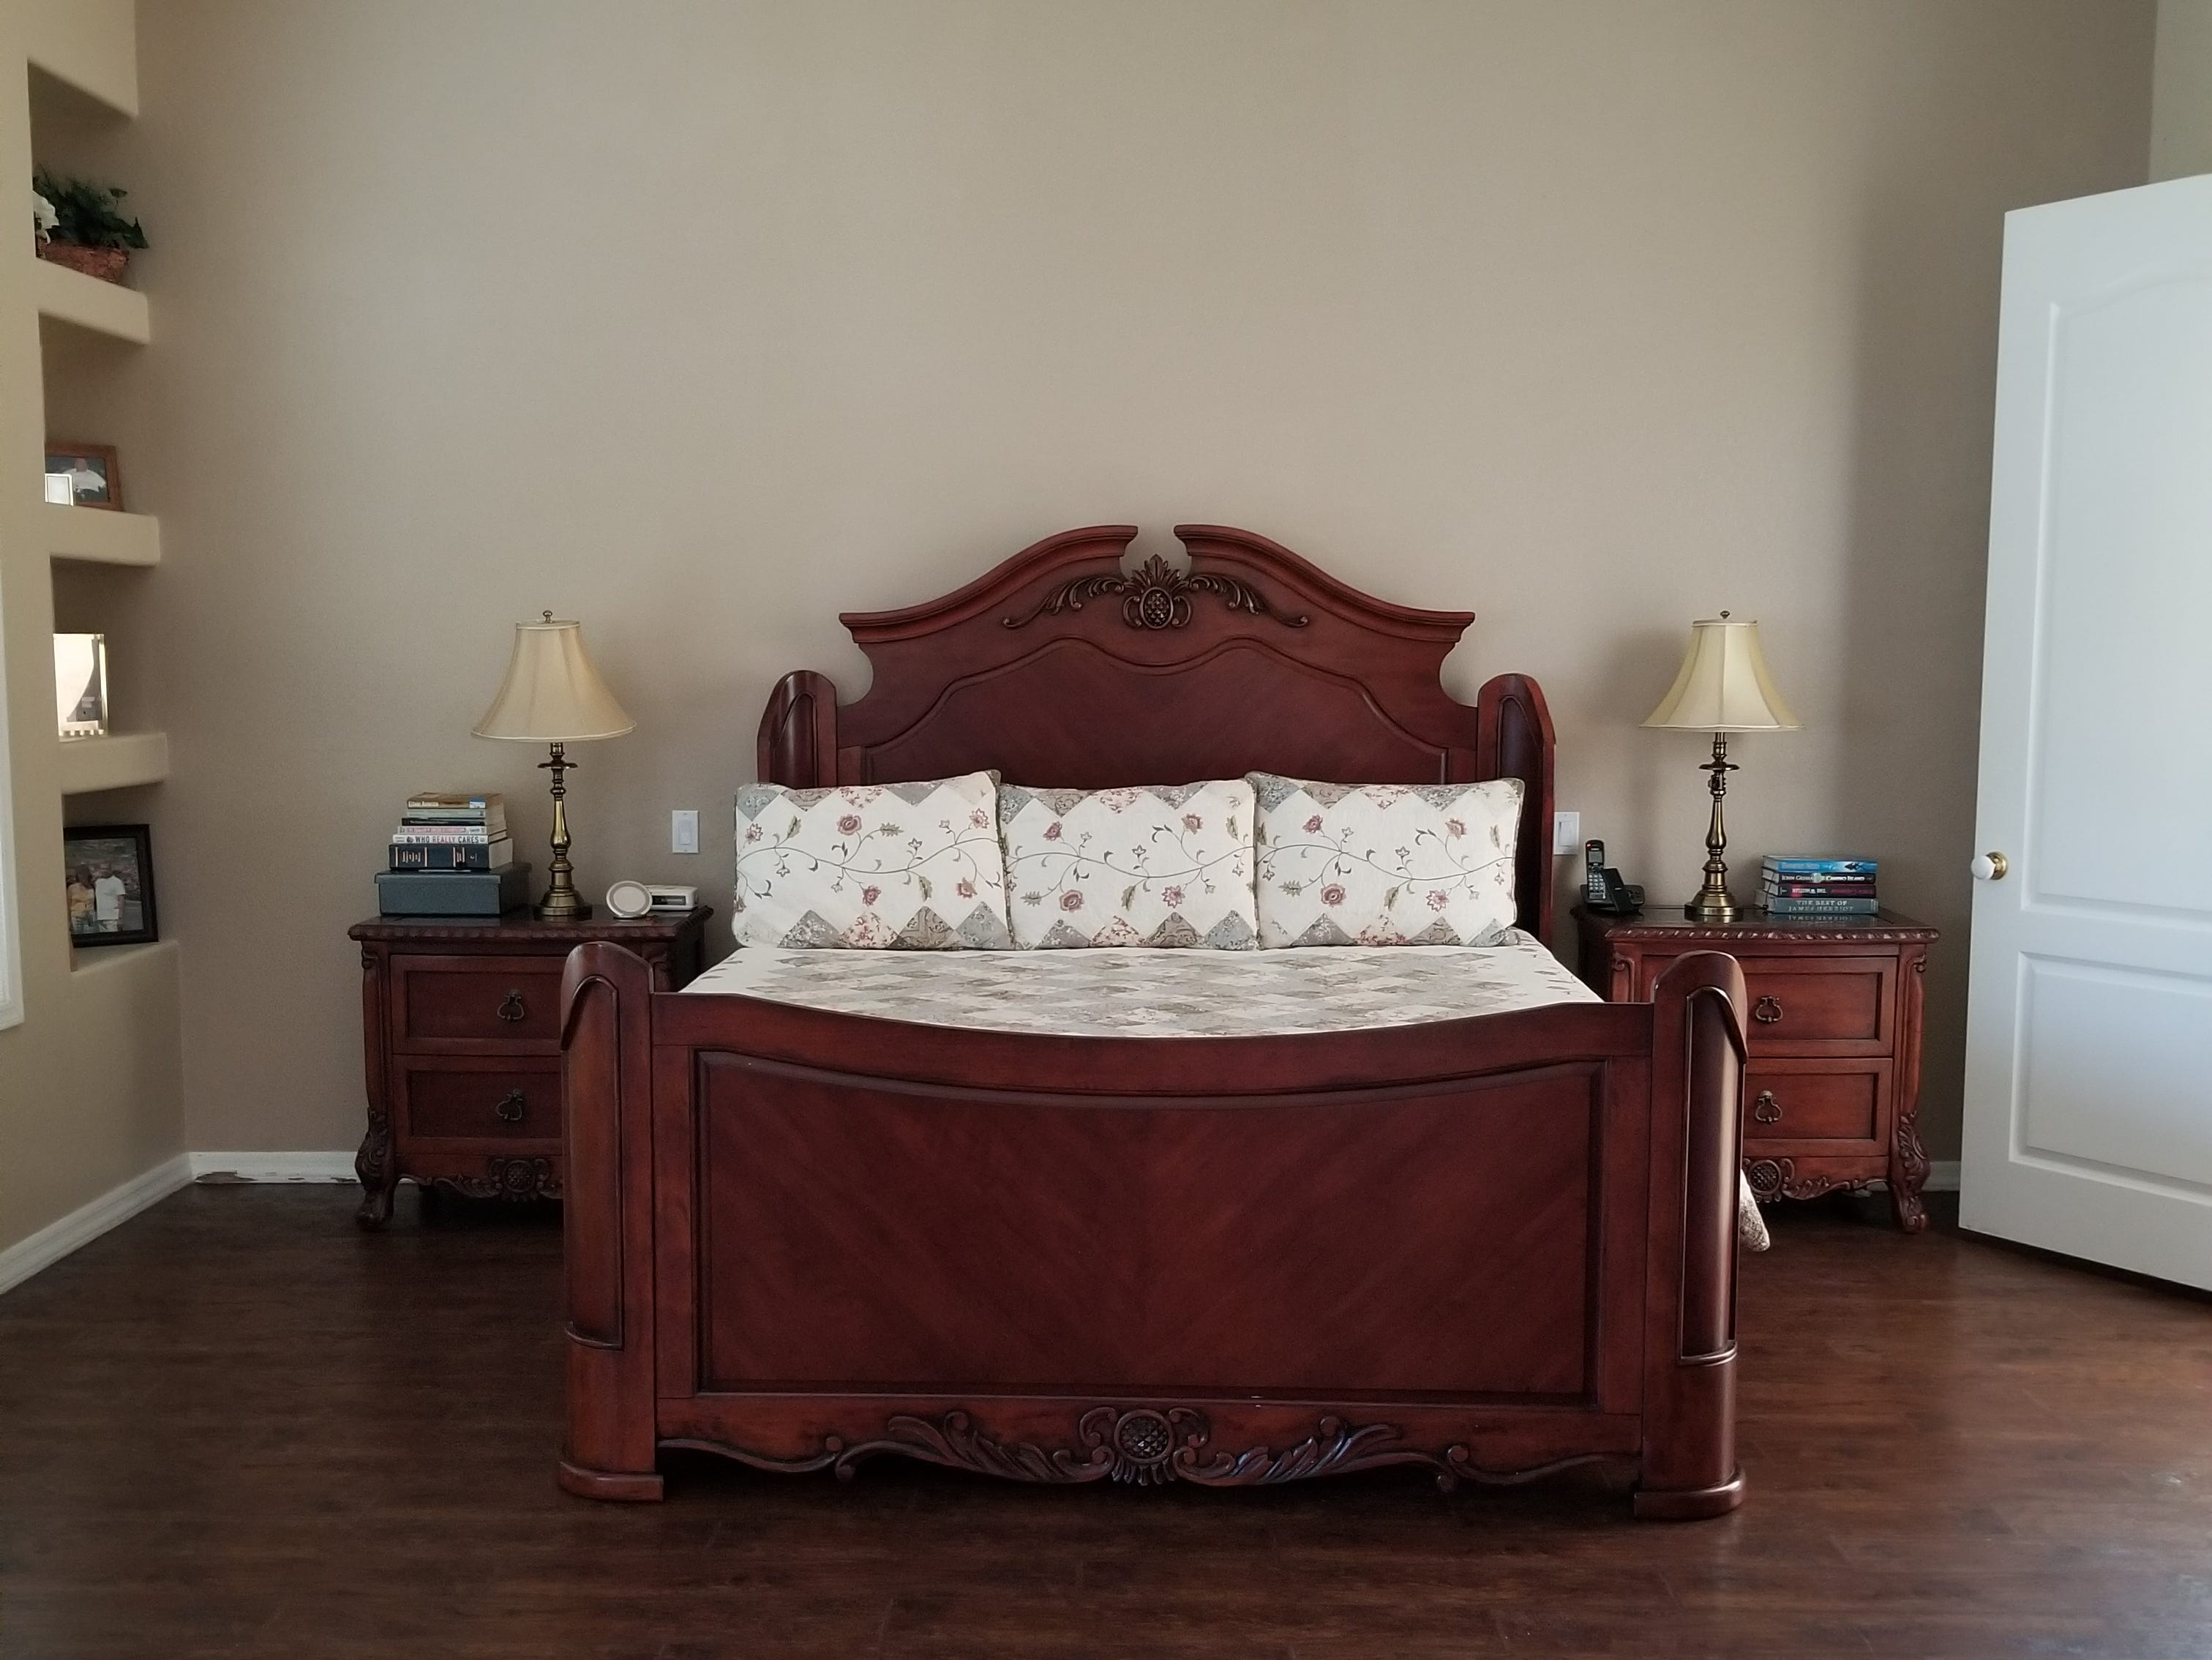 A built-in recess left of bed holds cherished family photos while two wing chair recliners complete a sitting area at the opposite end of the room. Plank Vinyl wood simulated flooring gives the look of hardwoods without the special care, and are resistant to scratches from the family pack of four-leggers.